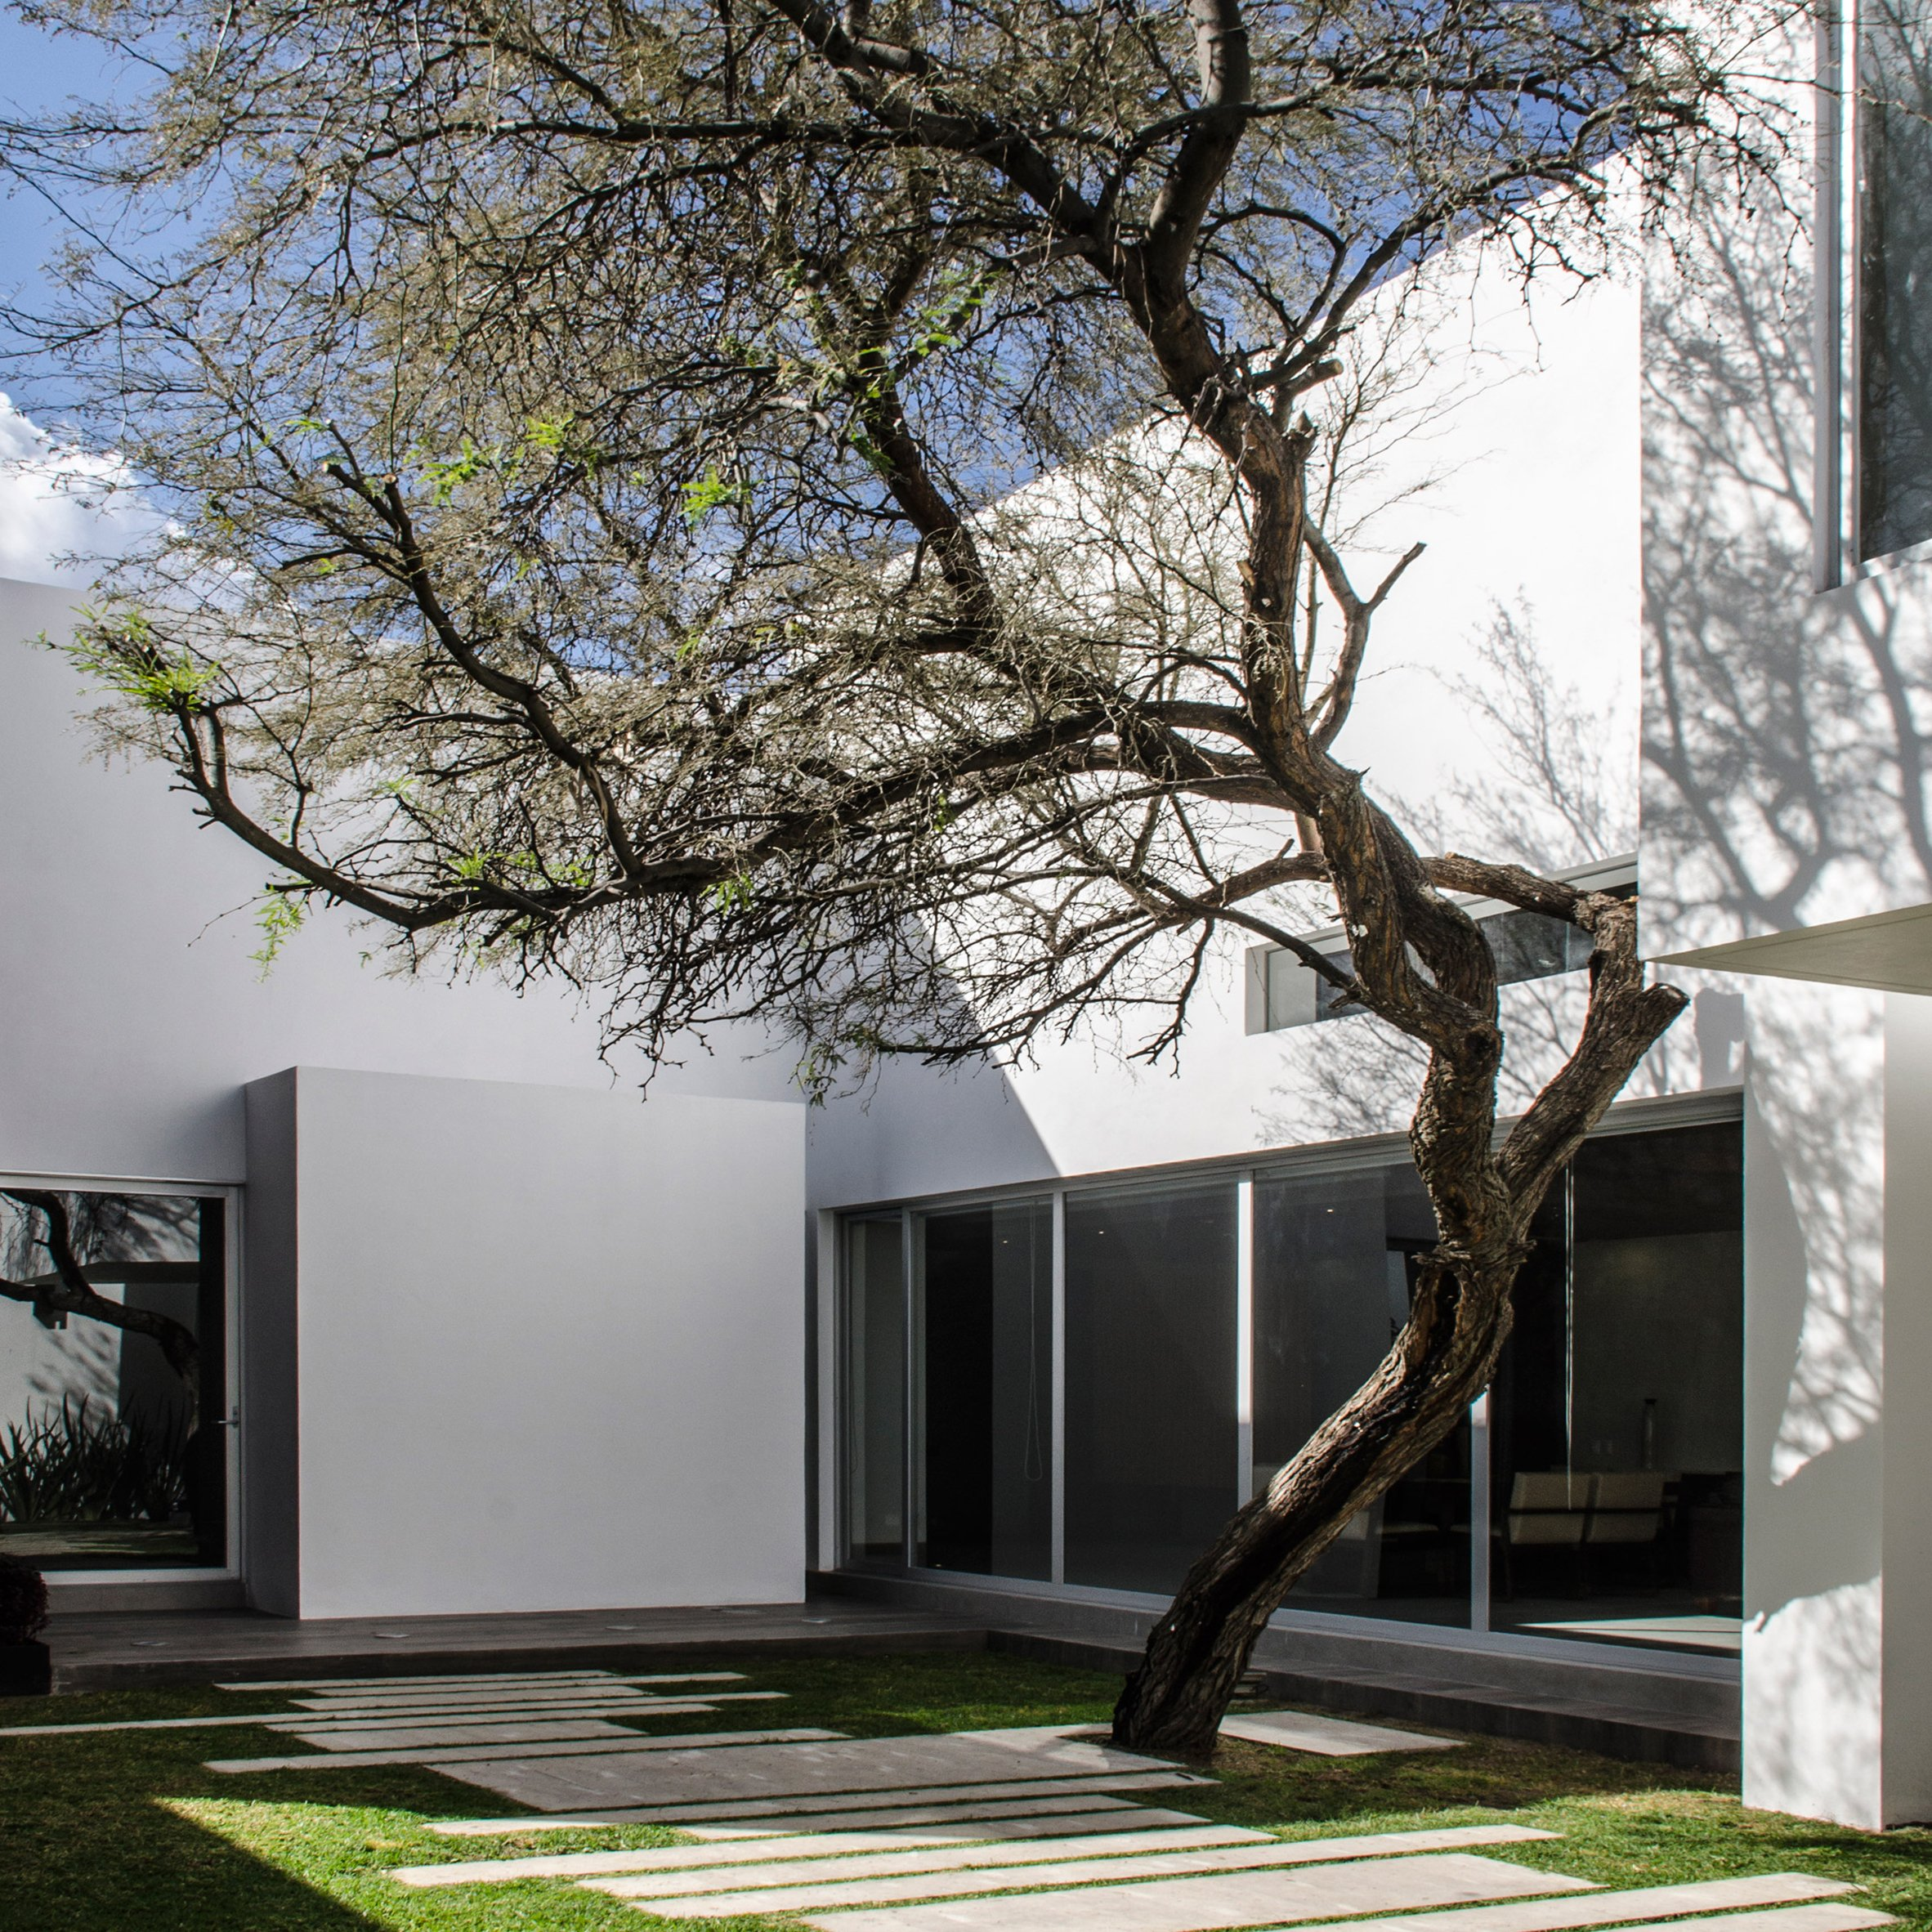 Central de arquitectura a mexico city based design studio has - Mesquite Tree Serves As Focal Point For Mexican Home By Bag Arquitectura This Monochrome Dwelling In Central Mexico